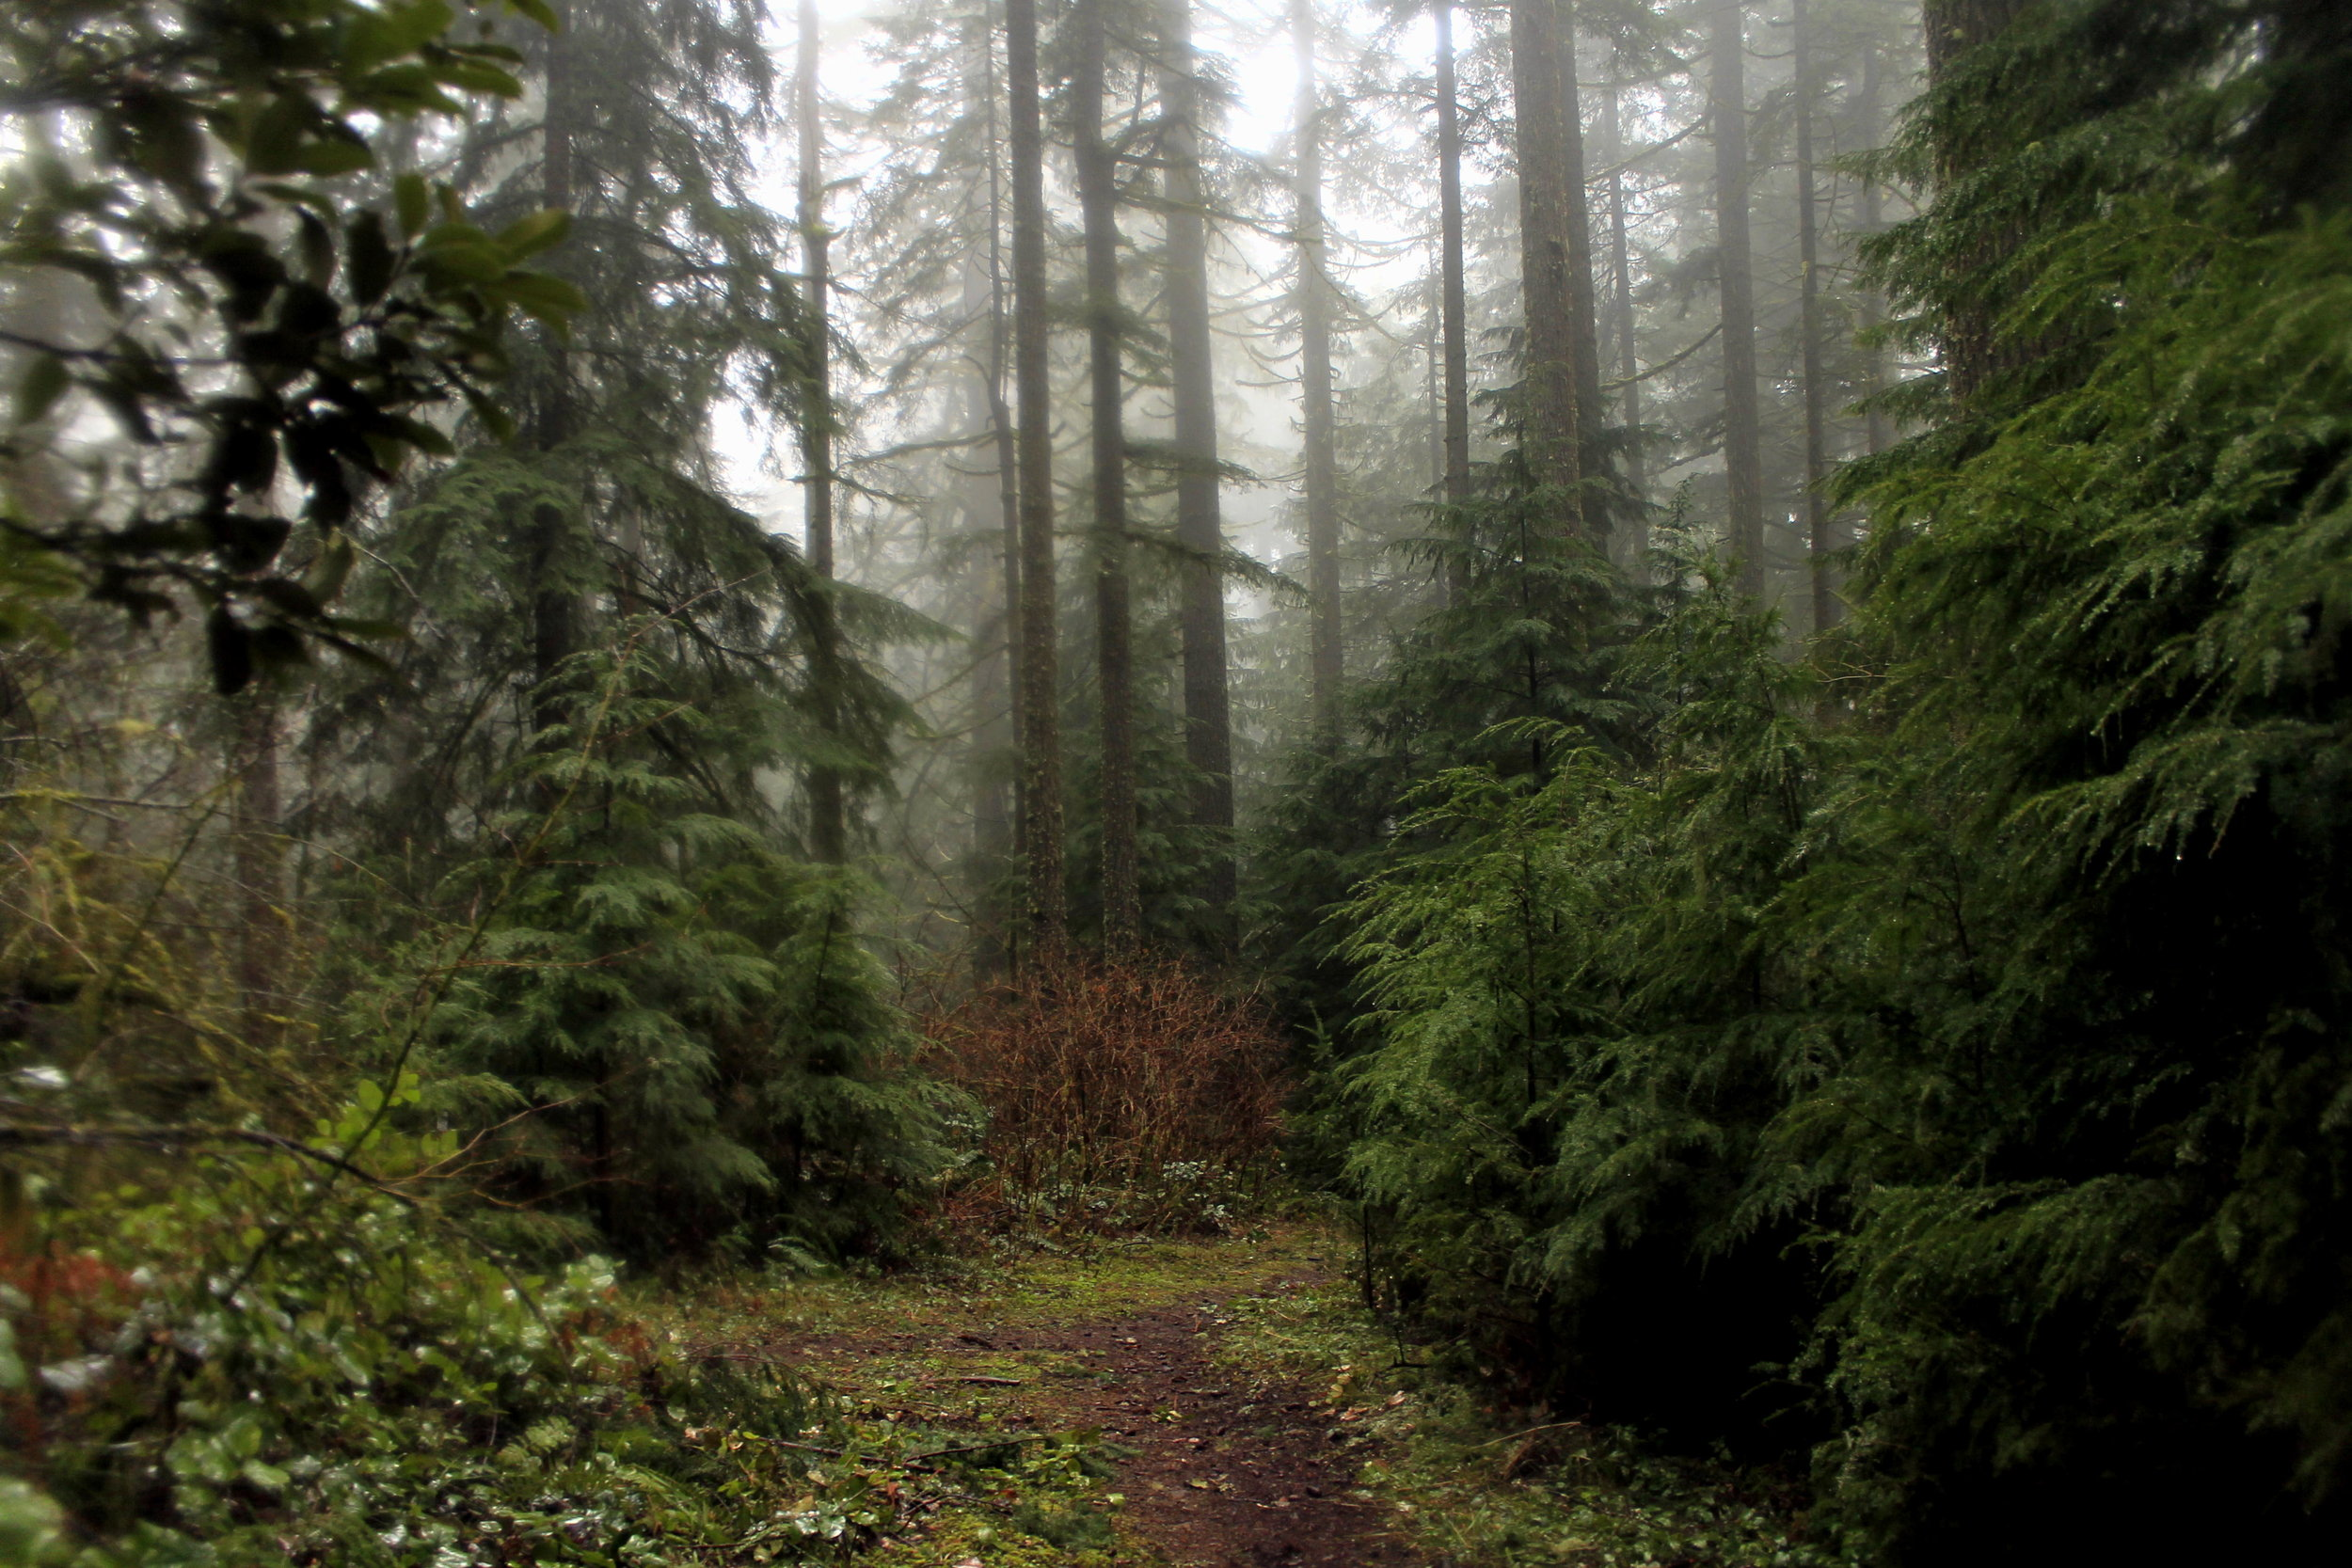 Deep in the Silver Falls backcountry on a rainy day.